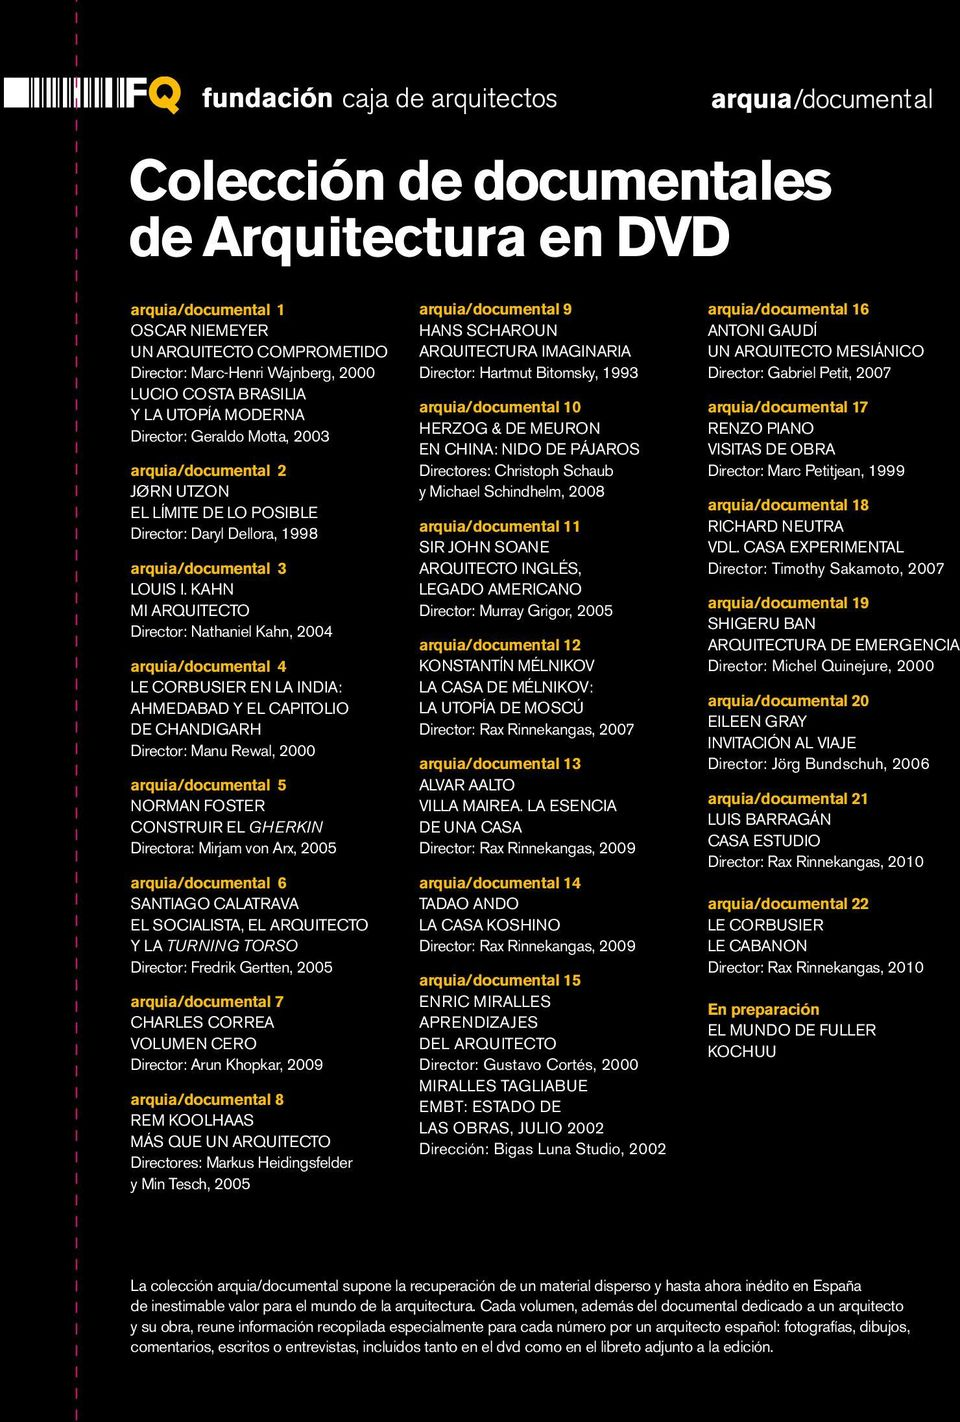 KAHN MI ARQUITECTO Director: Nathaniel Kahn, 2004 arquia/documental 4 LE CORBUSIER EN LA INDIA: AHMEDABAD Y EL CAPITOLIO DE CHANDIGARH Director: Manu Rewal, 2000 arquia/documental 5 NORMAN FOSTER